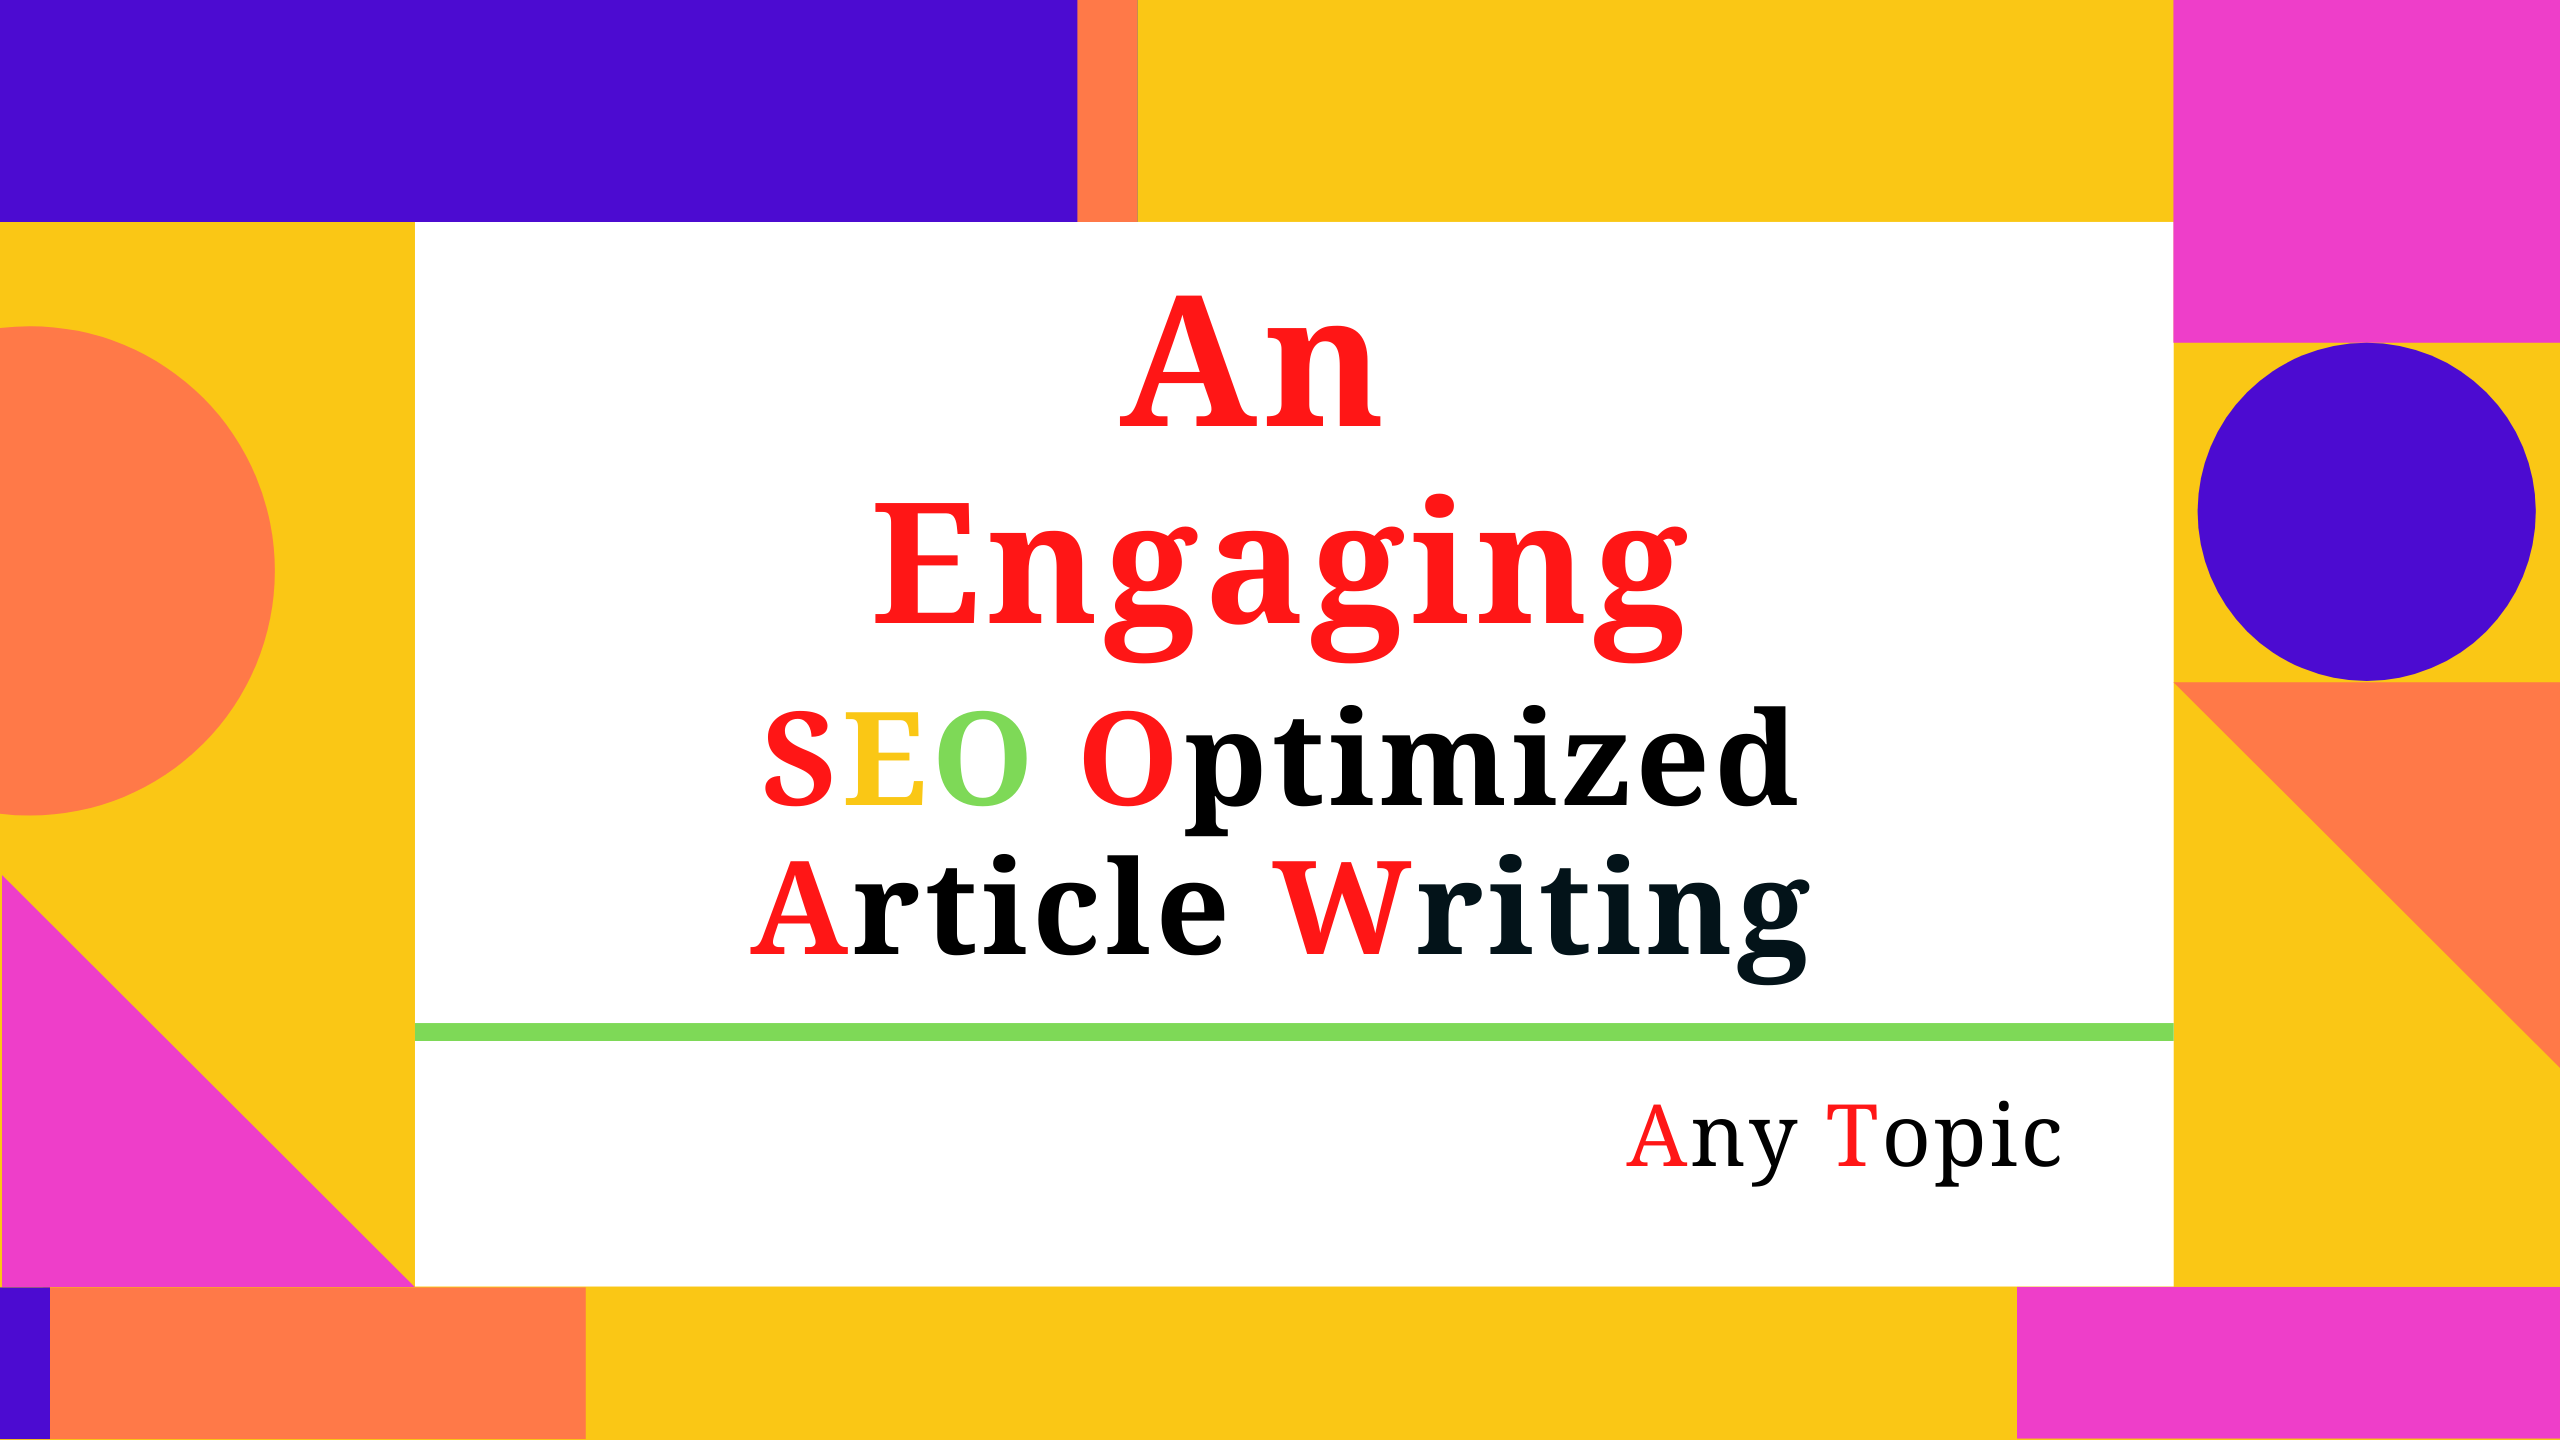 Write an engaging and unique SEO article on any topic